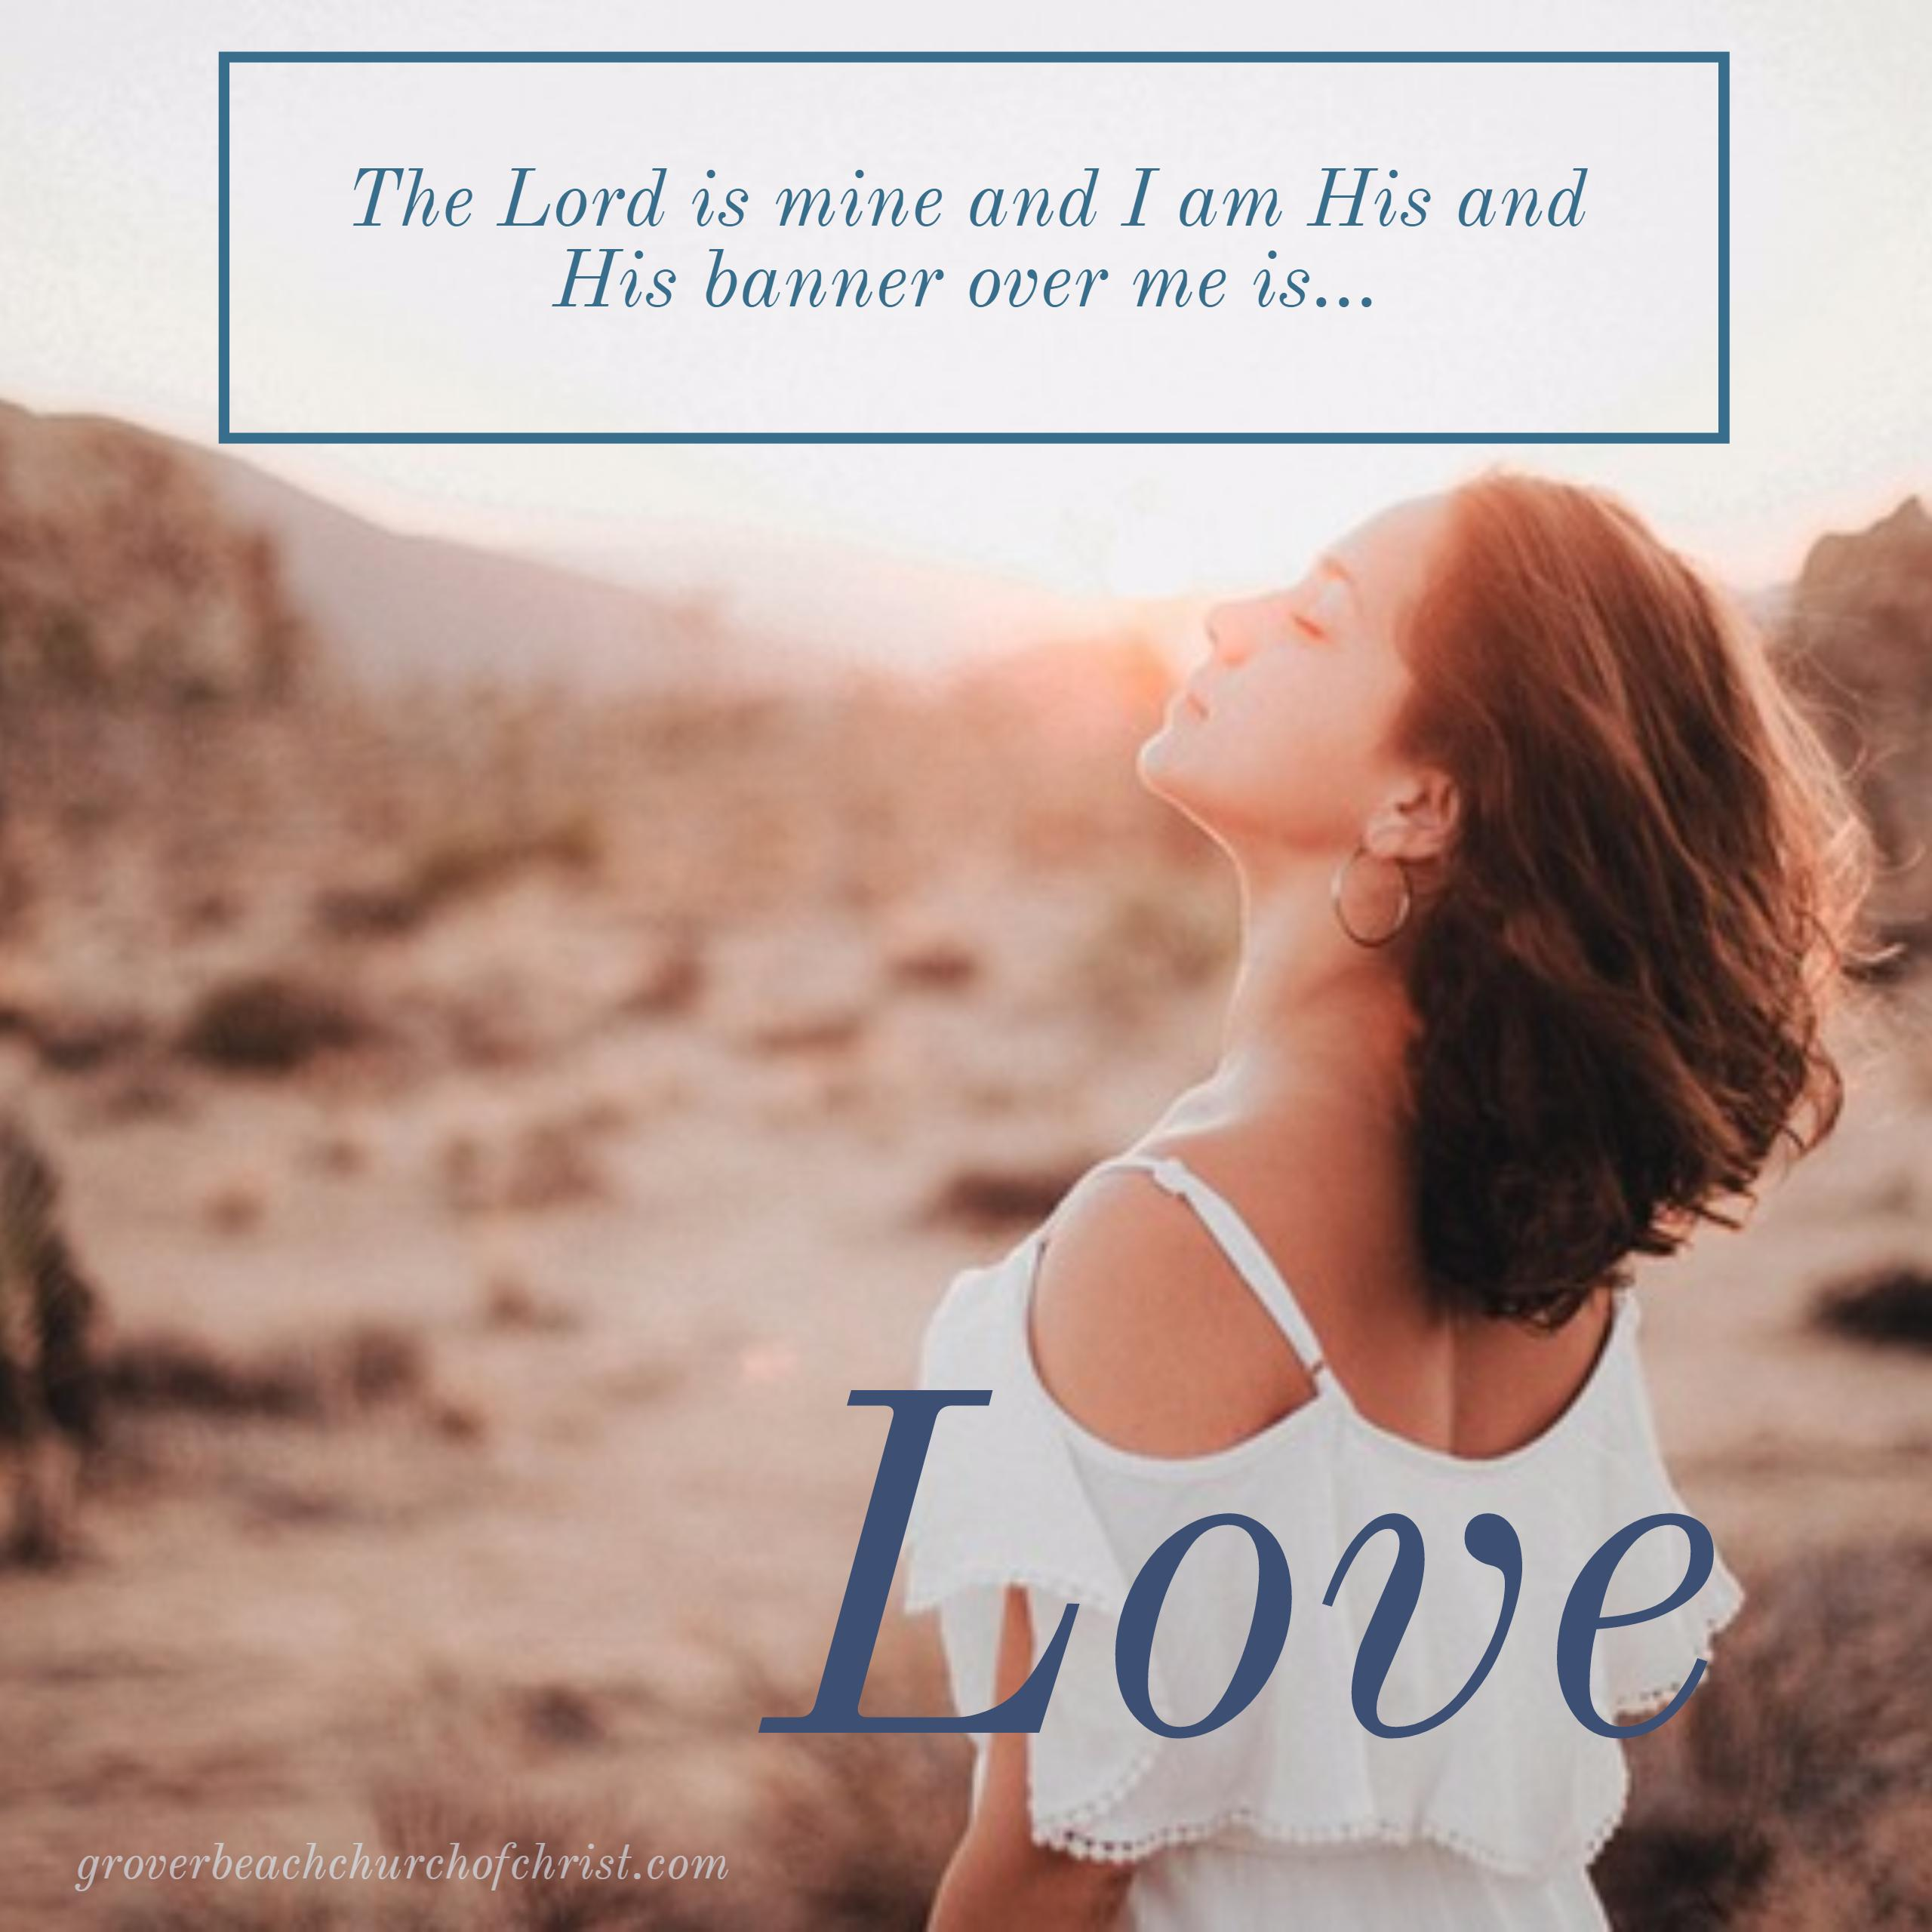 his-banner-over-me-is-love